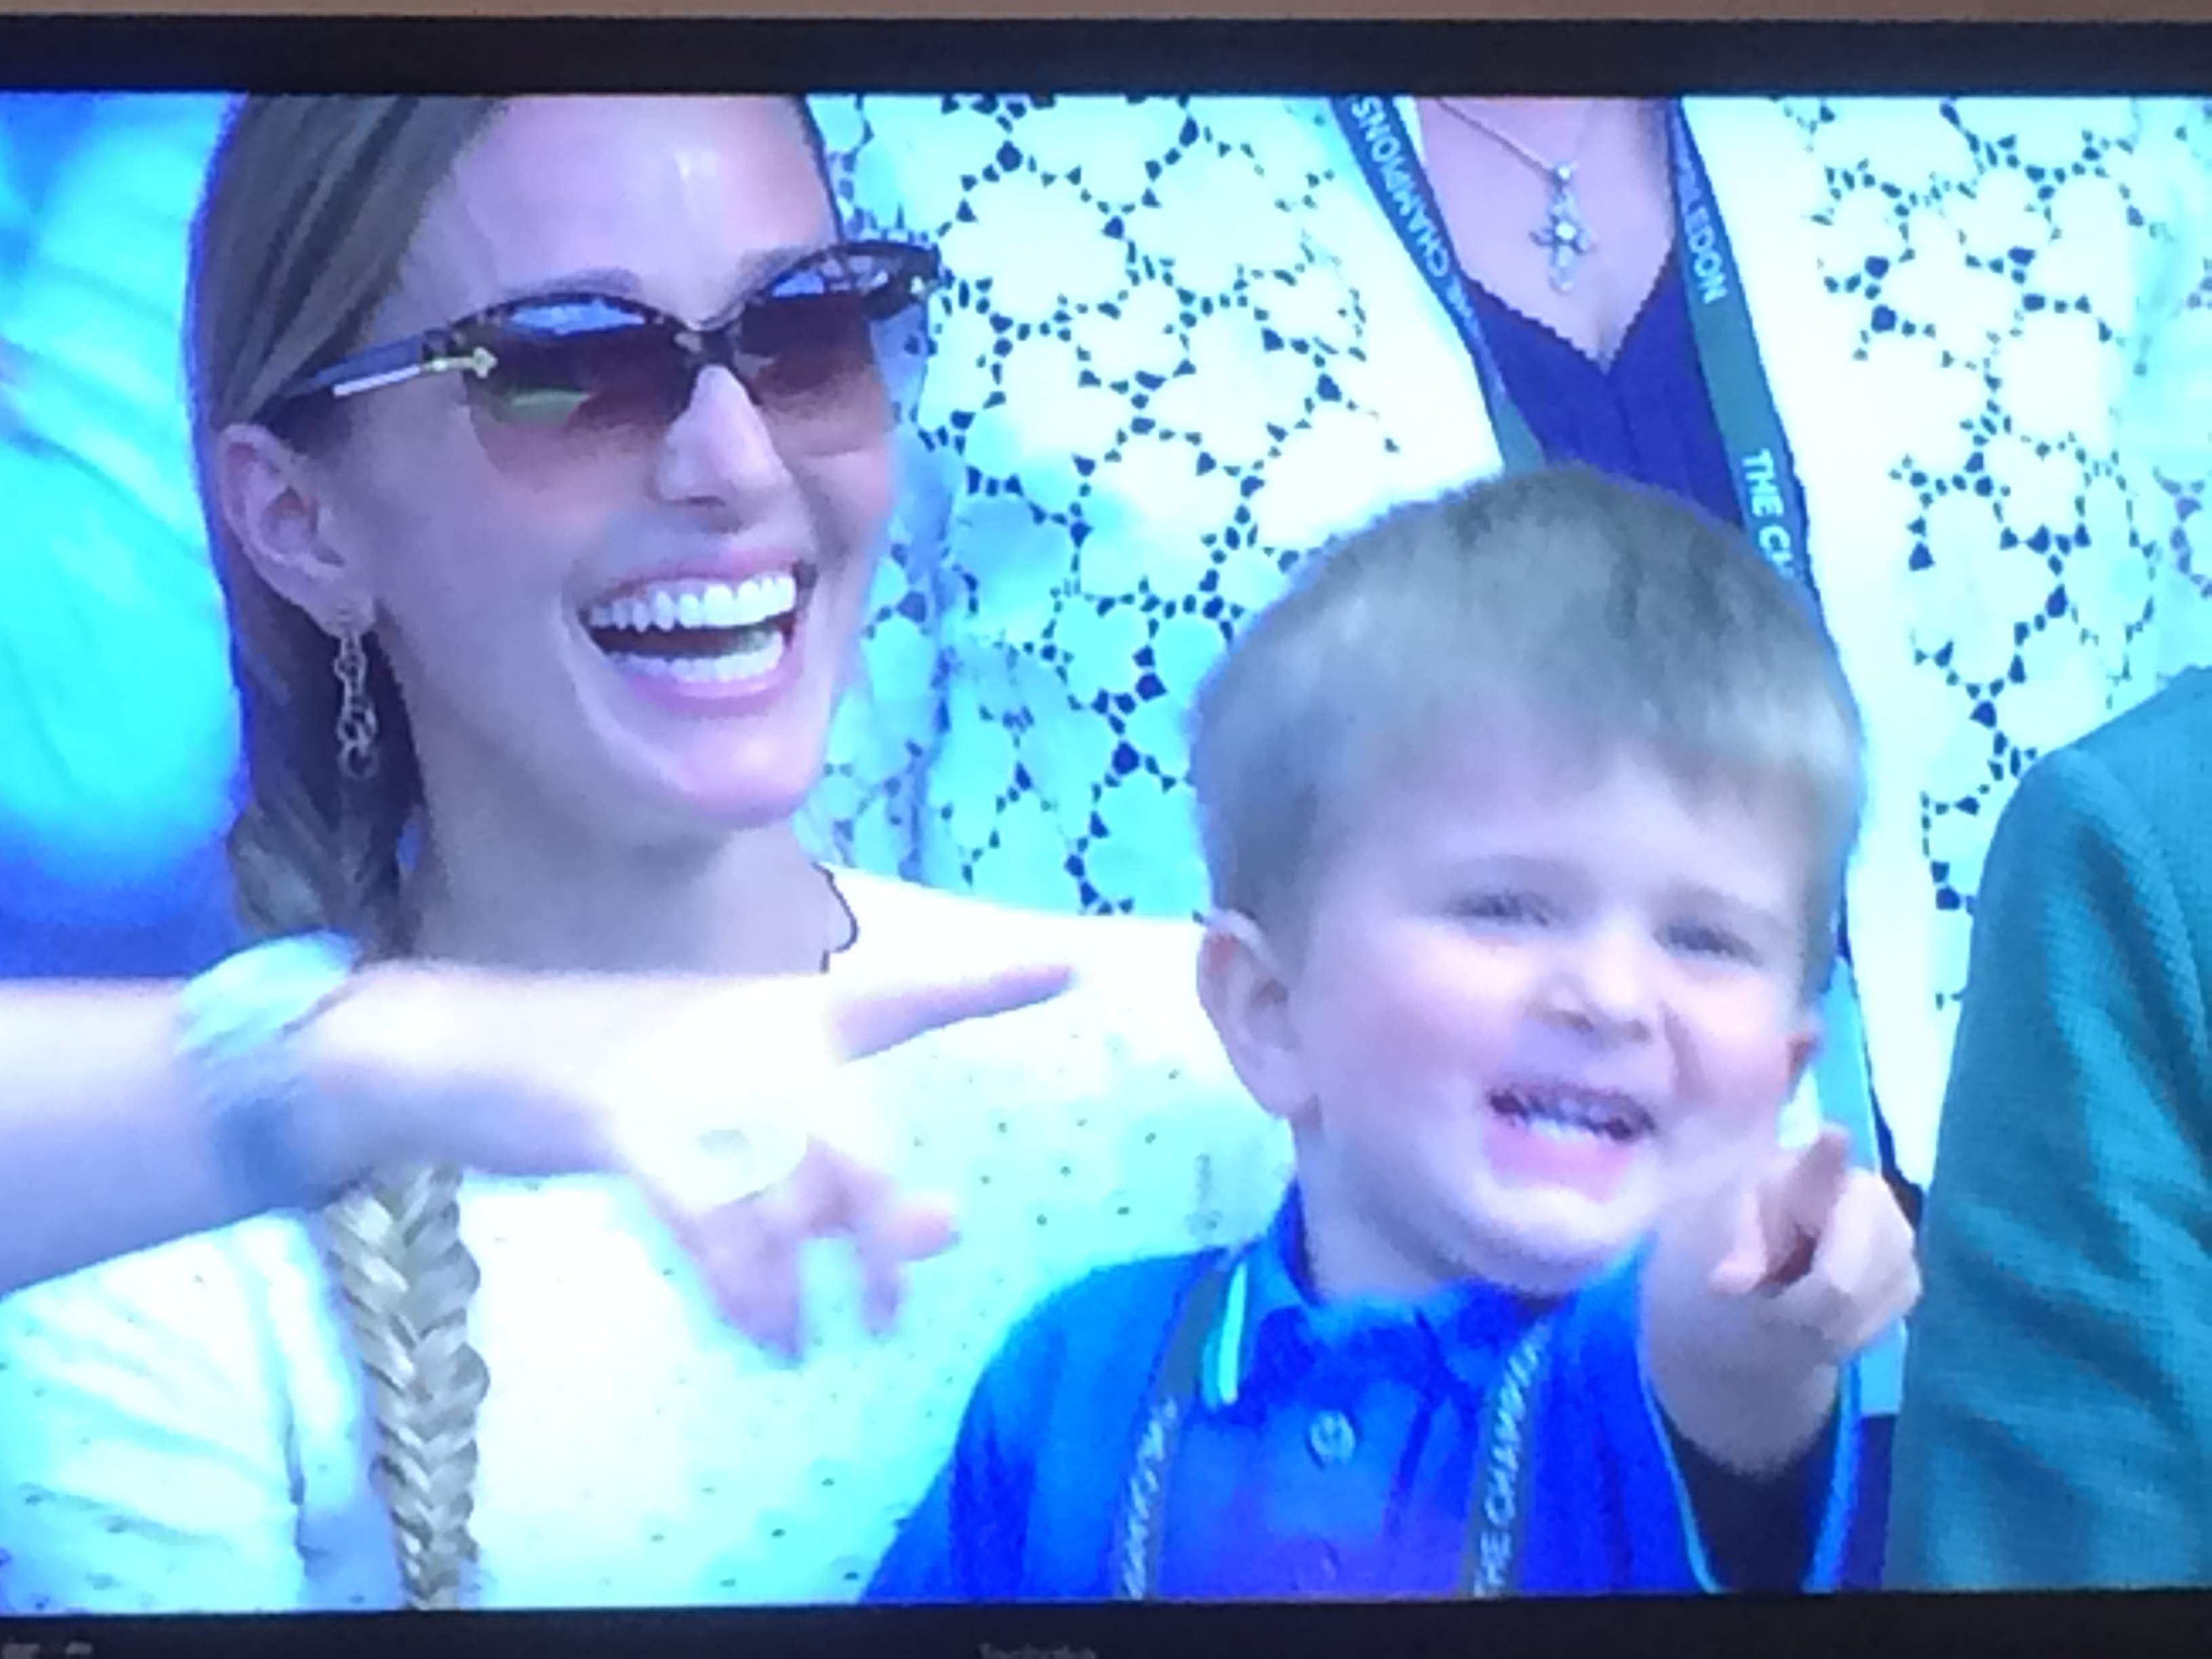 Djokovic's wife and son applauding